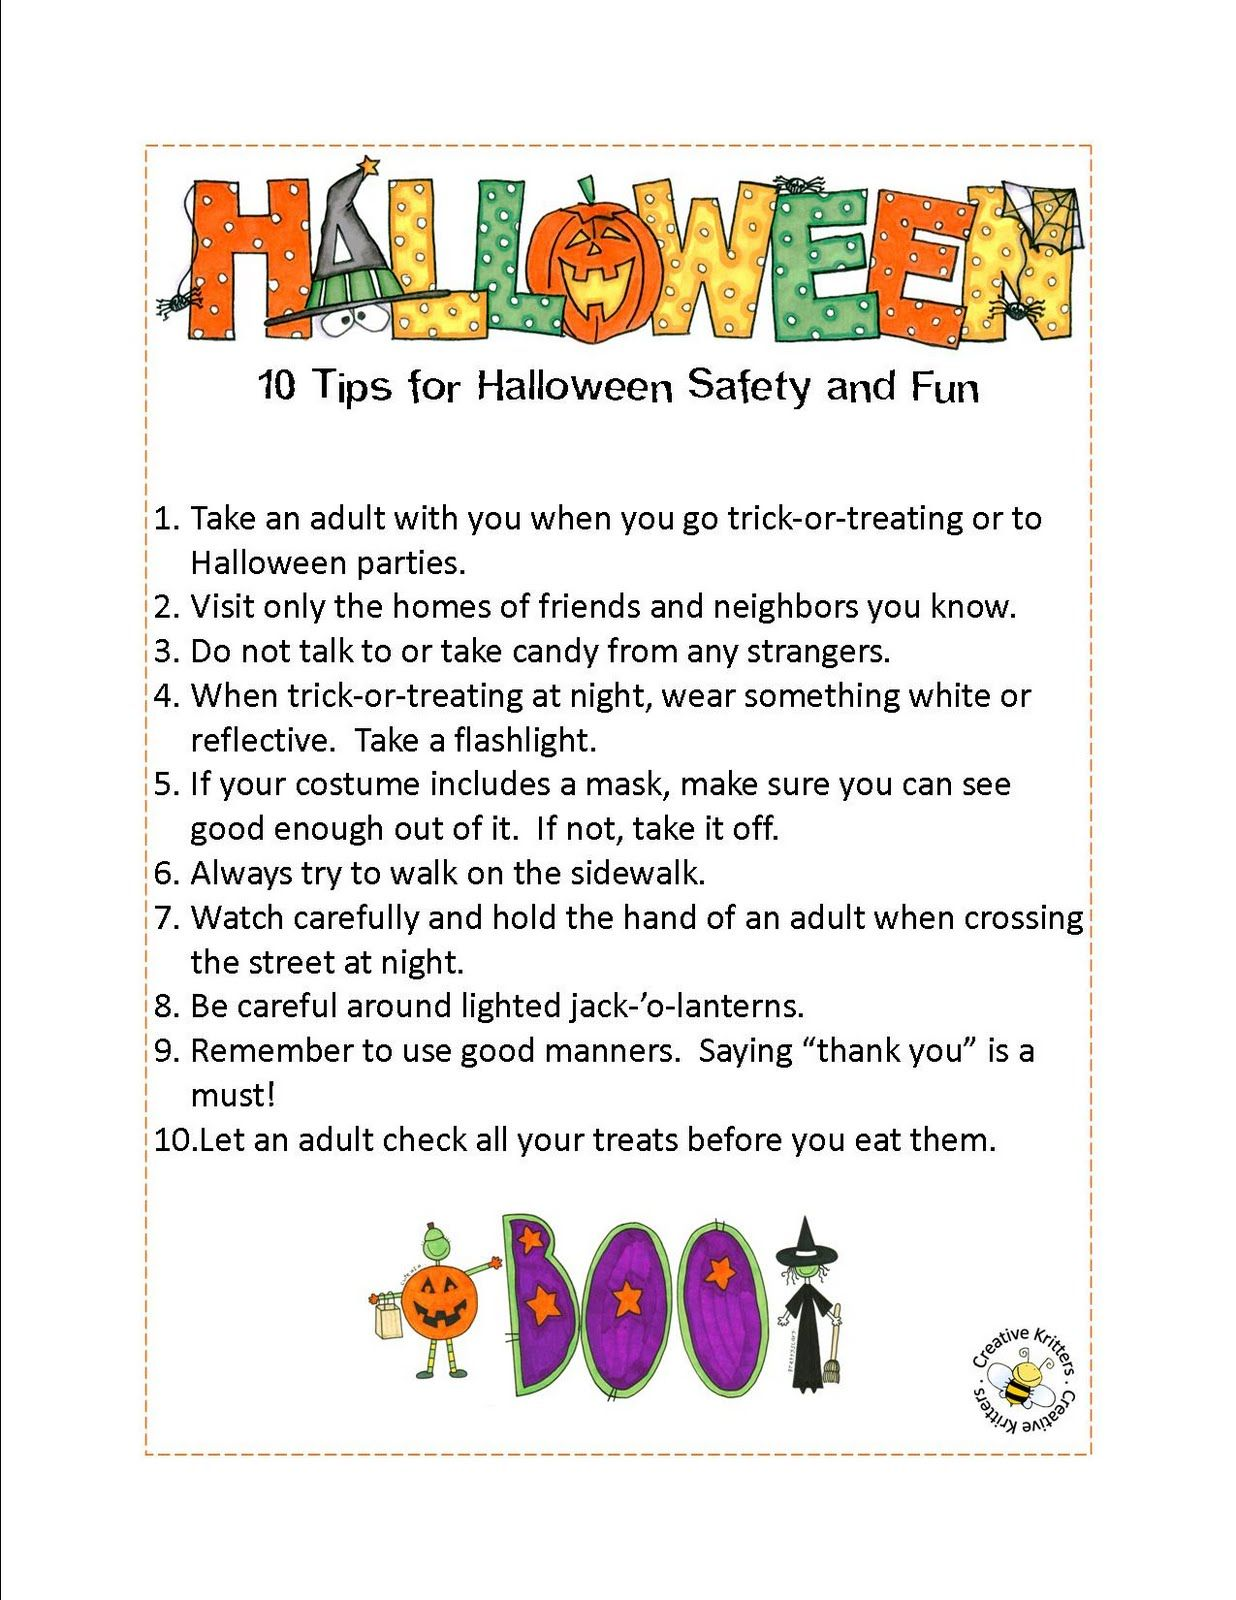 What are some tips for Halloween safety?